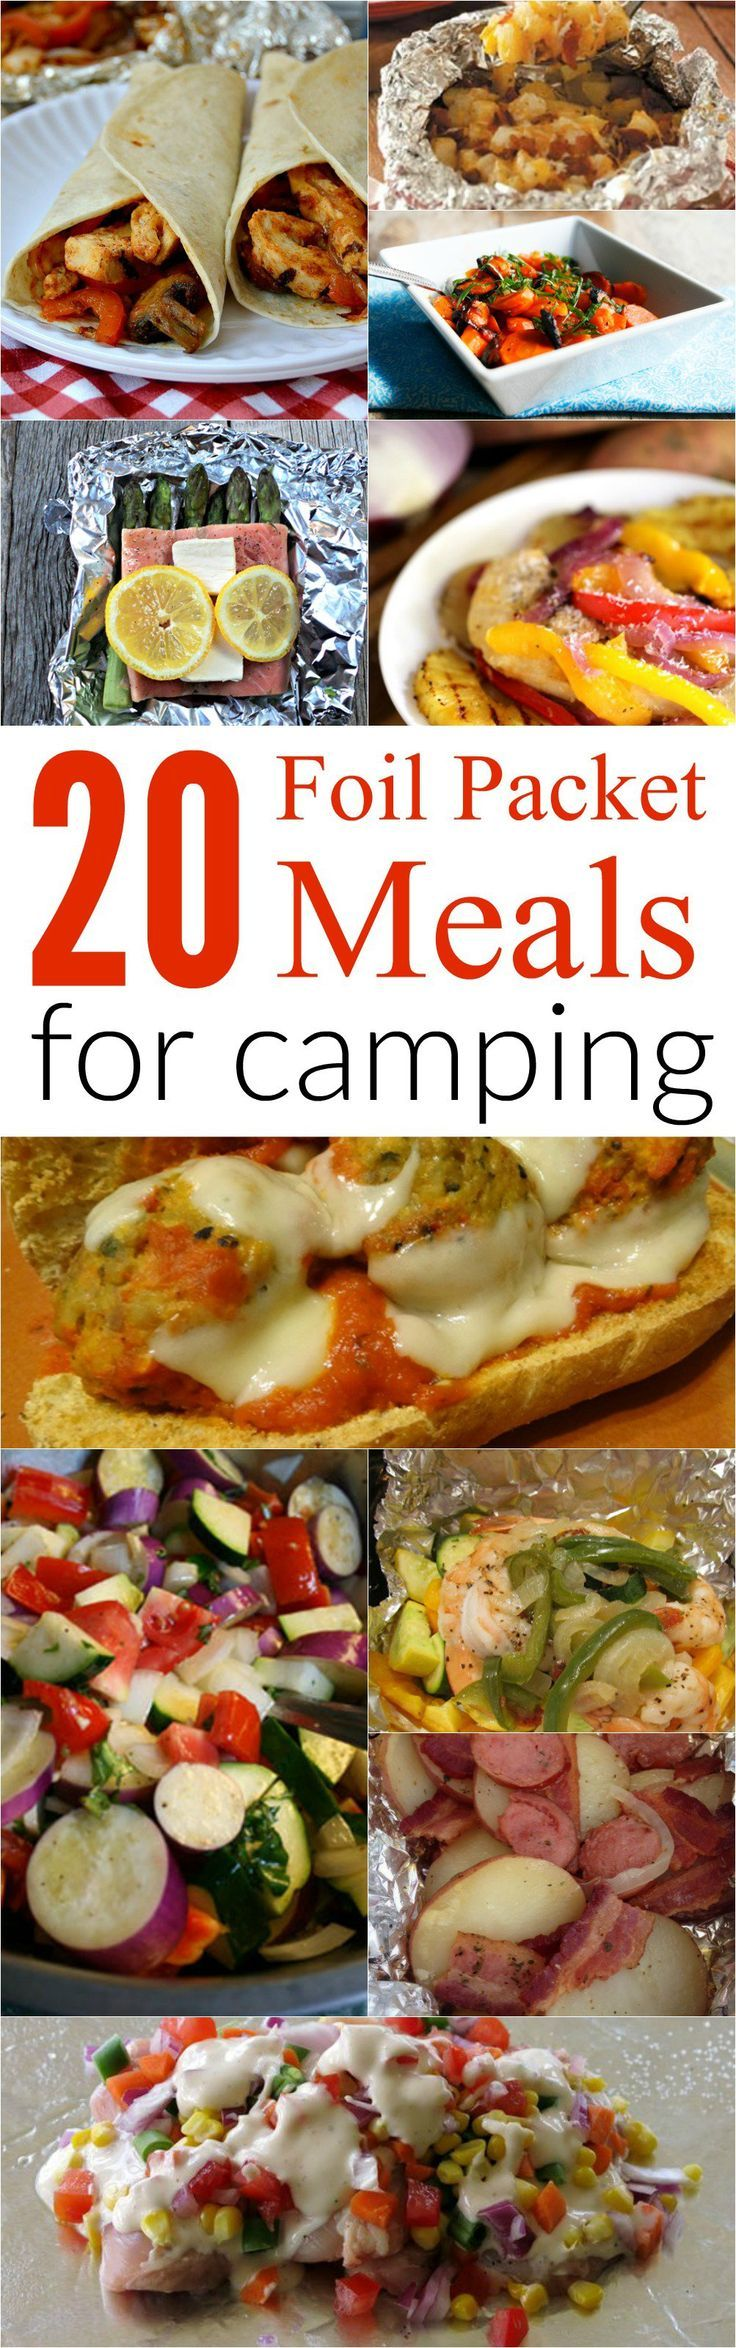 Top 20 Foil Meal Packet Recipes for Camping! Great on-the-go ideas to throw on the grill for dinner!